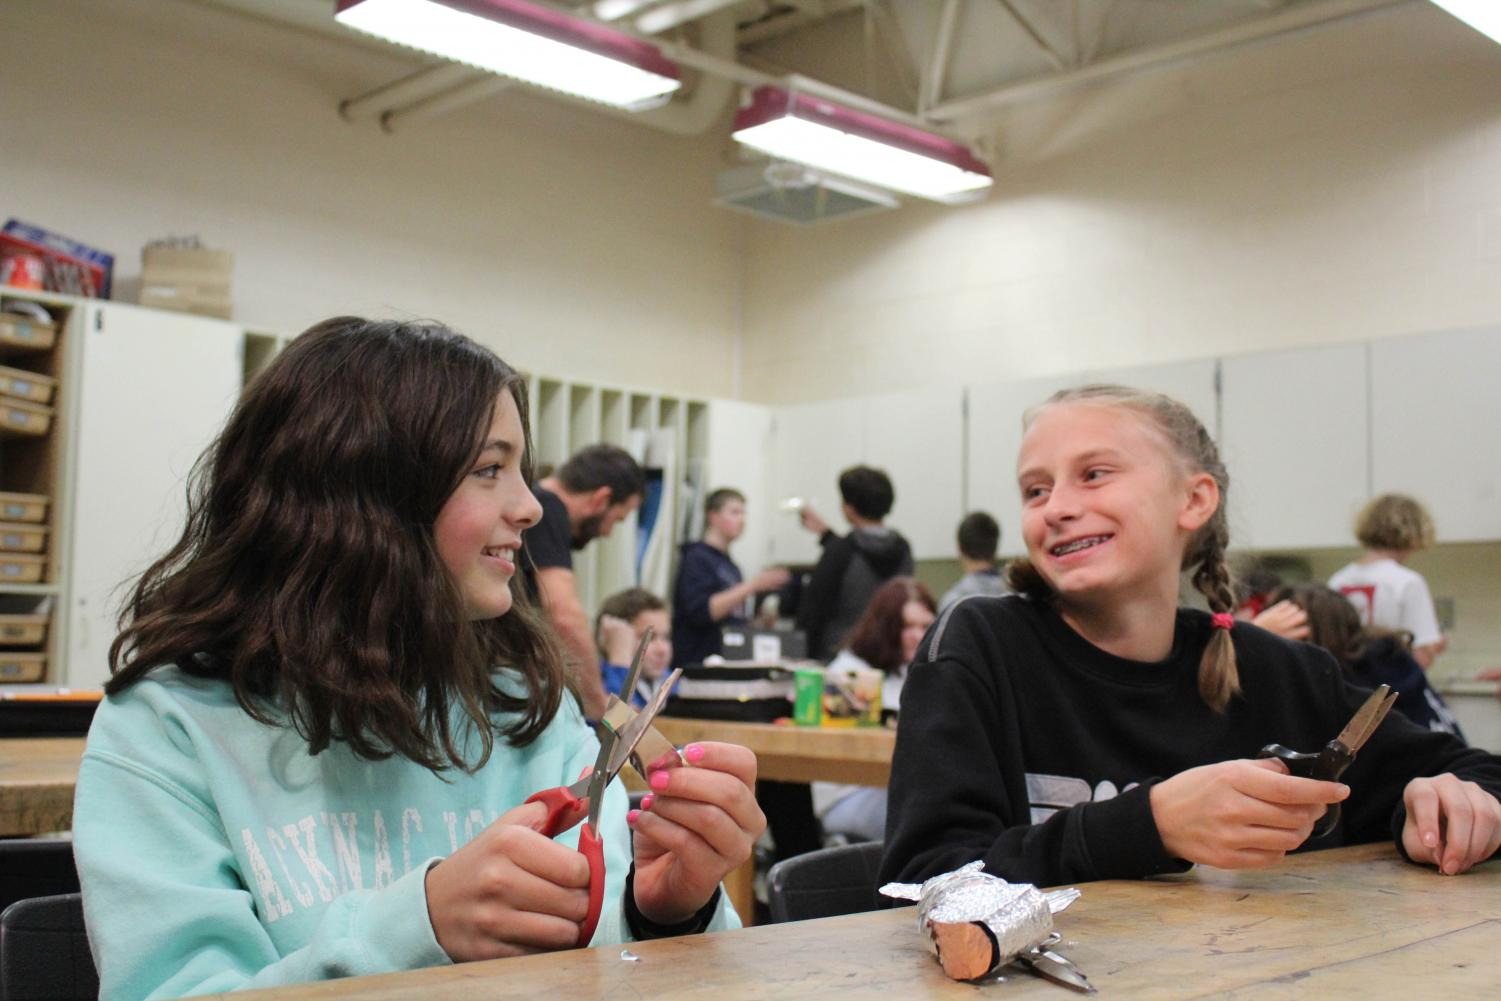 Roxy McClellan and Hayden Boonstra both (25) talk while making pottery.